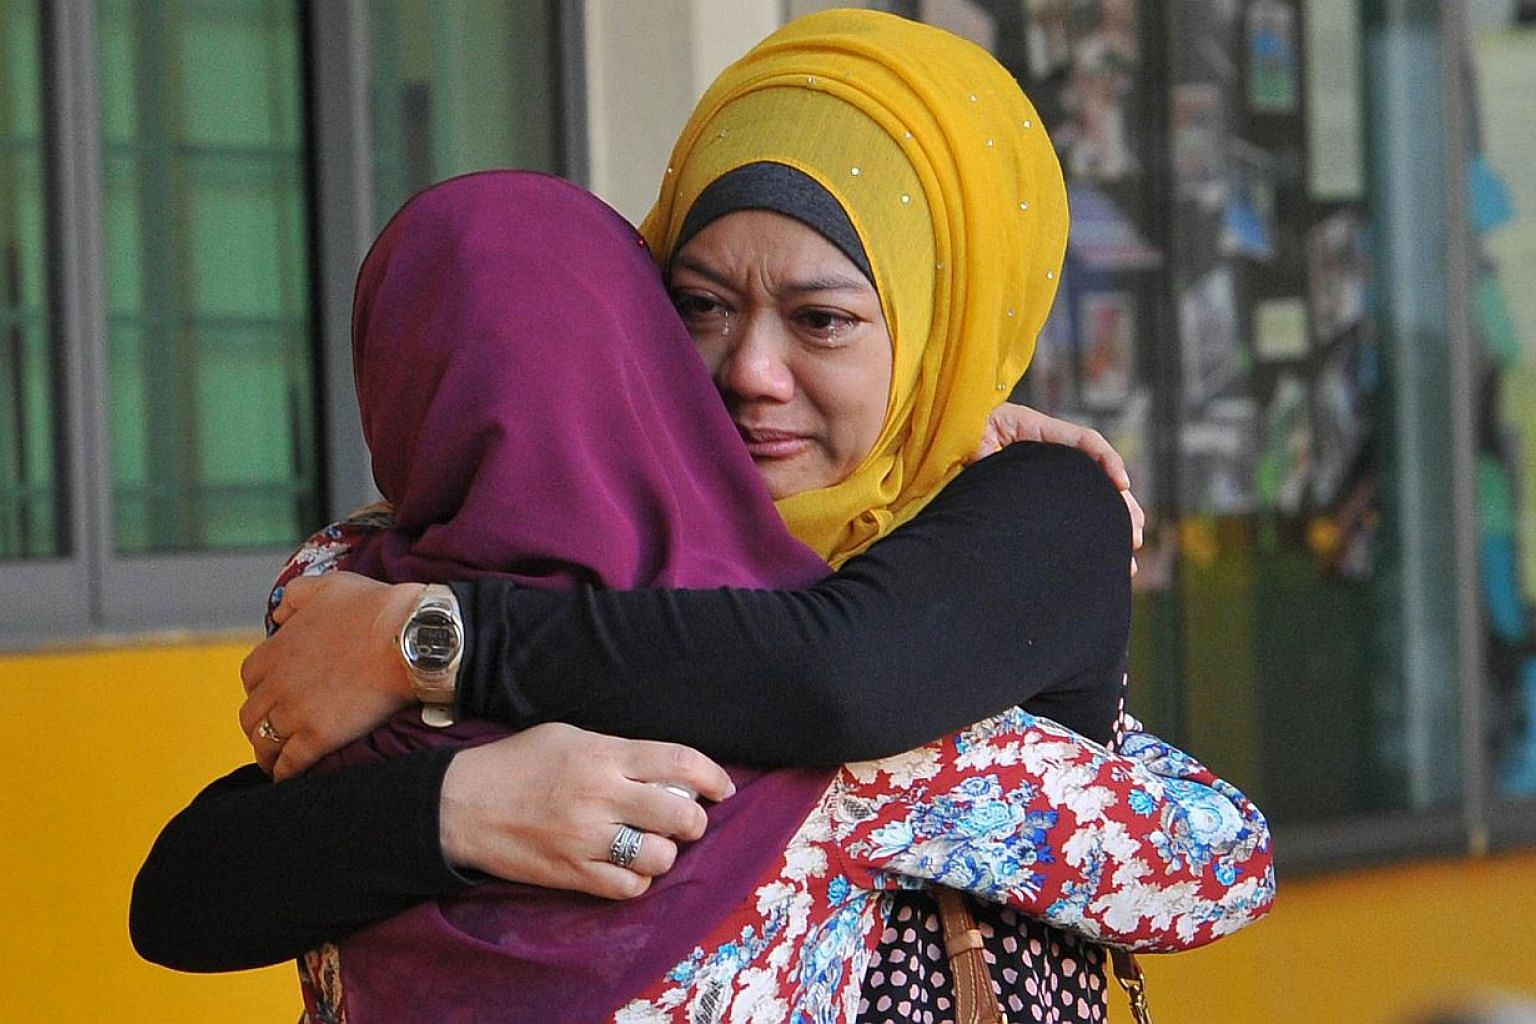 Family members of students from Tanjong Katong Primary School embrace in tears in memory of the victims from the school in an earthquake on Malaysia's Mount Kinabalu. -- PHOTO: AFP